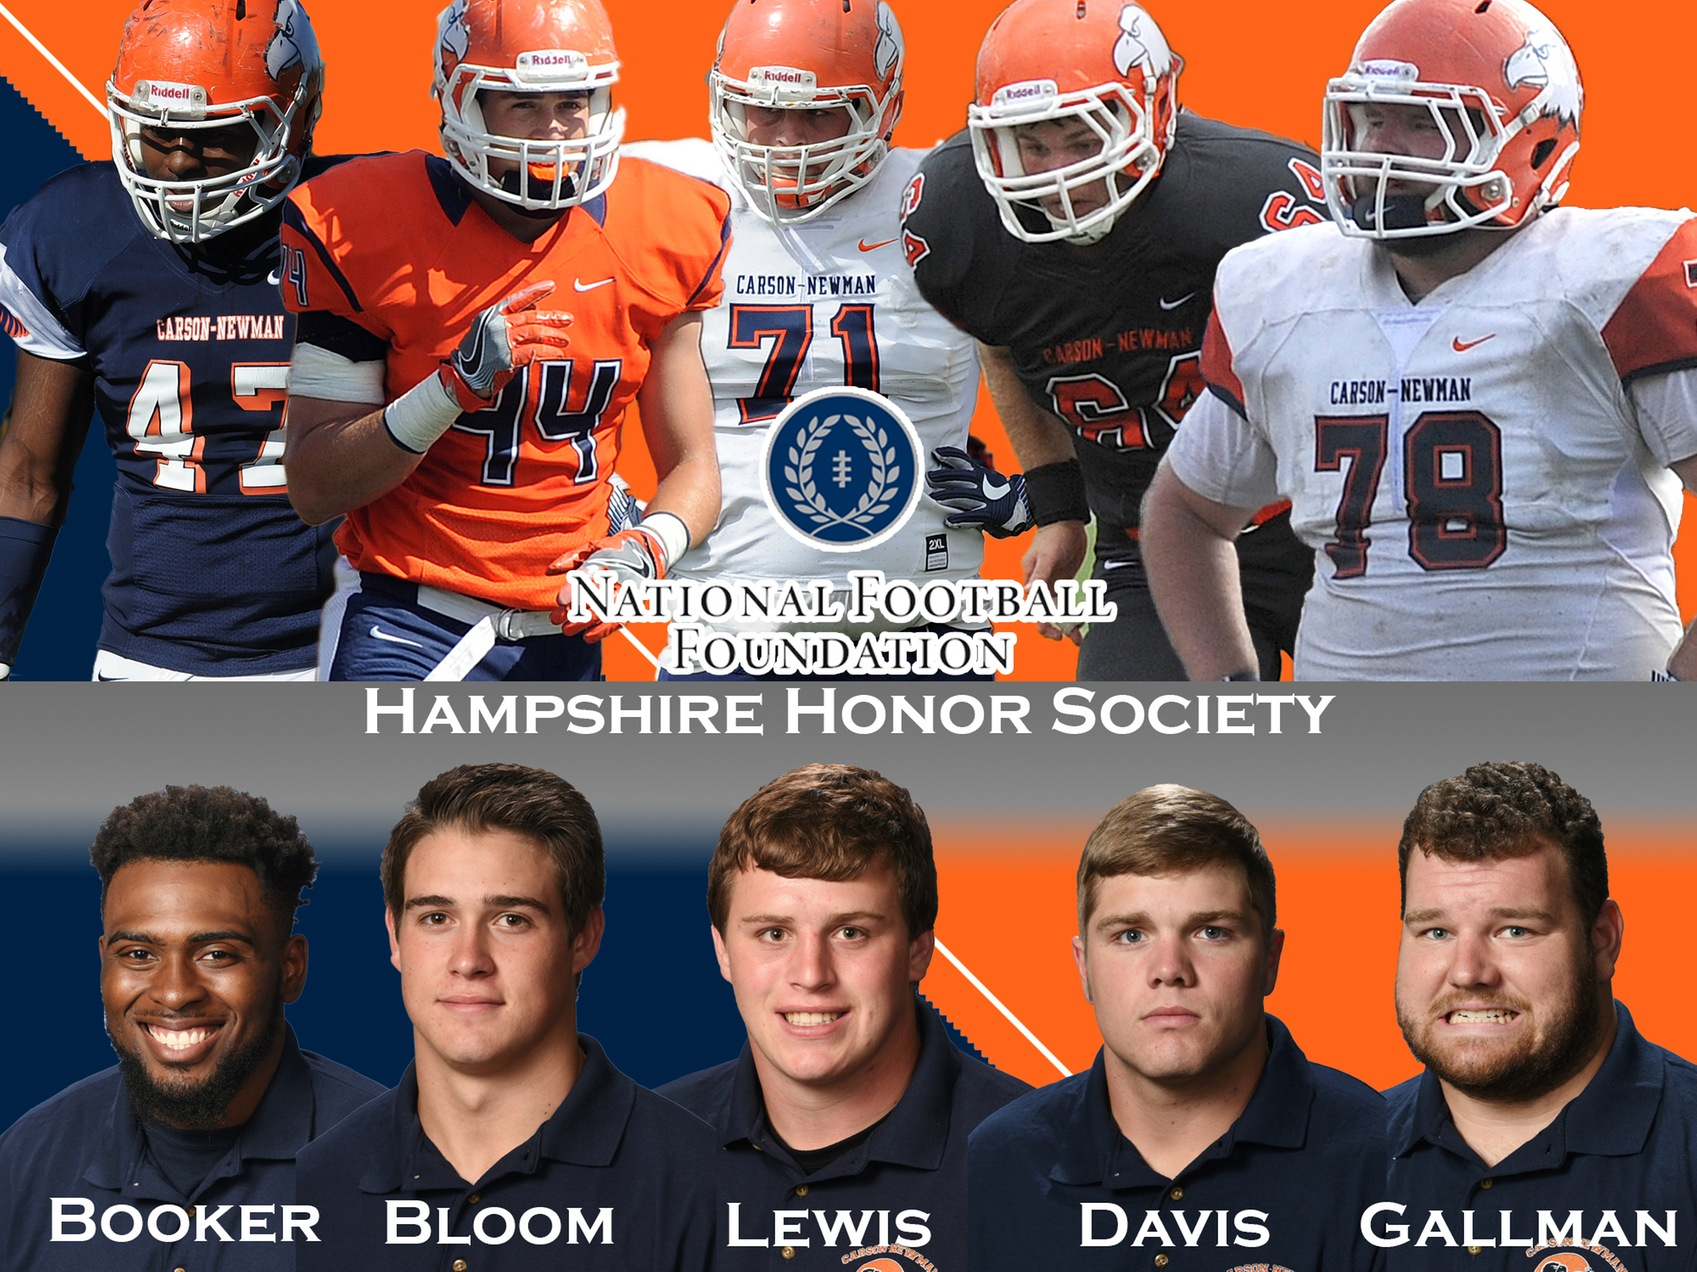 Five Eagles named to National Football Foundation's Hampshire Honor Society